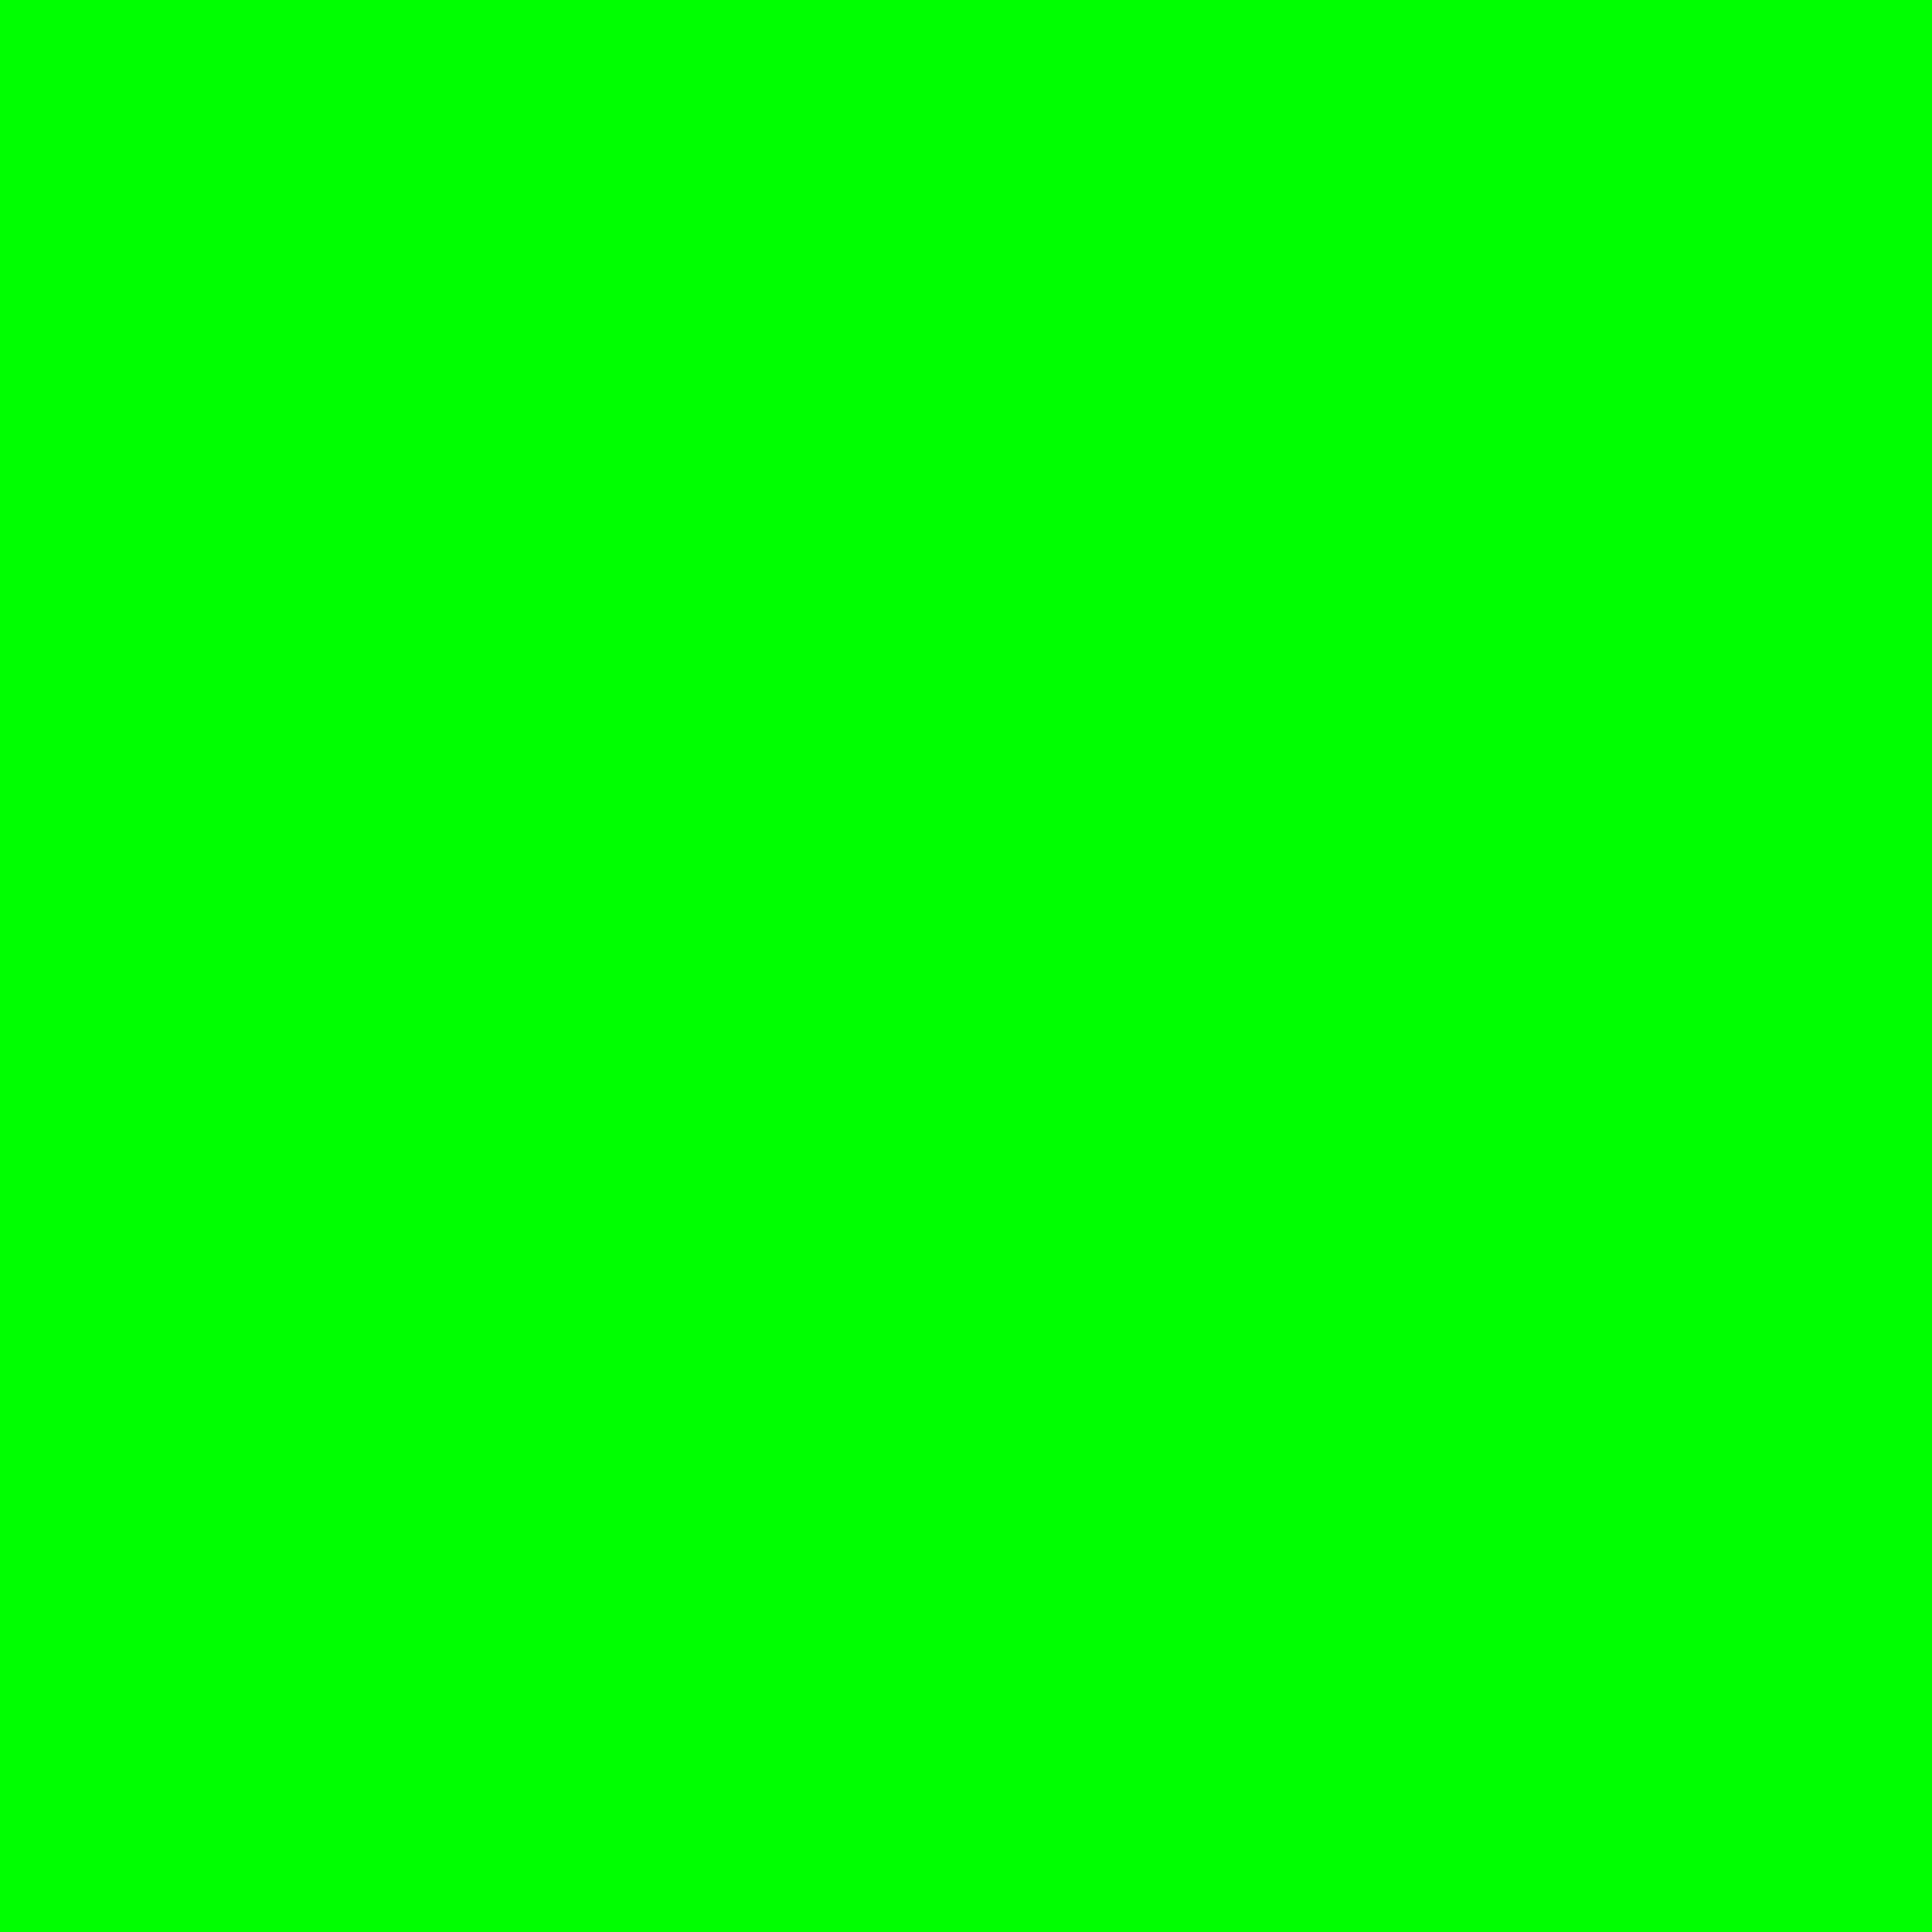 2048x2048 Lime Web Green Solid Color Background